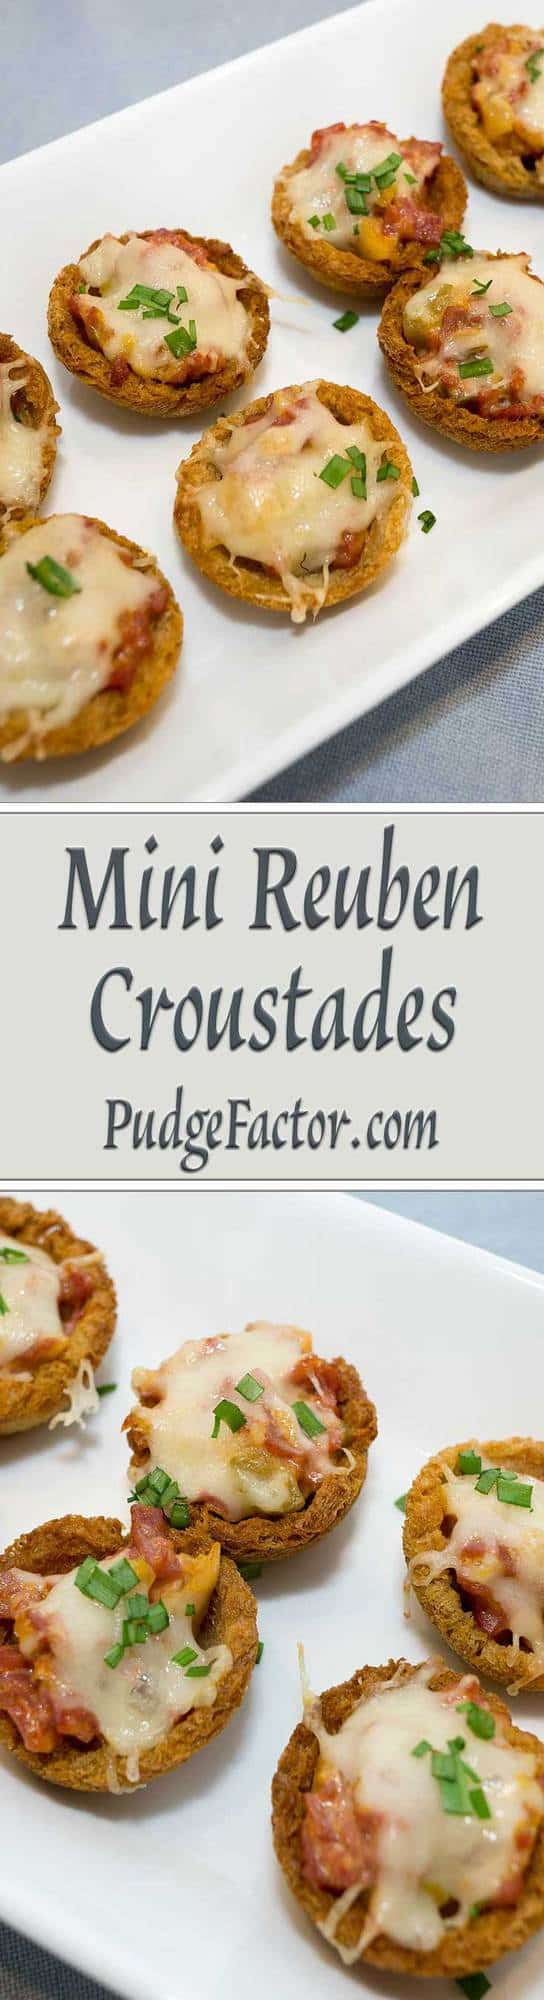 If you like Reuben sandwiches, you'll love these delectable Mini Reuben Croustades. They make the perfect bite-sized appetizer for your holiday gathering.